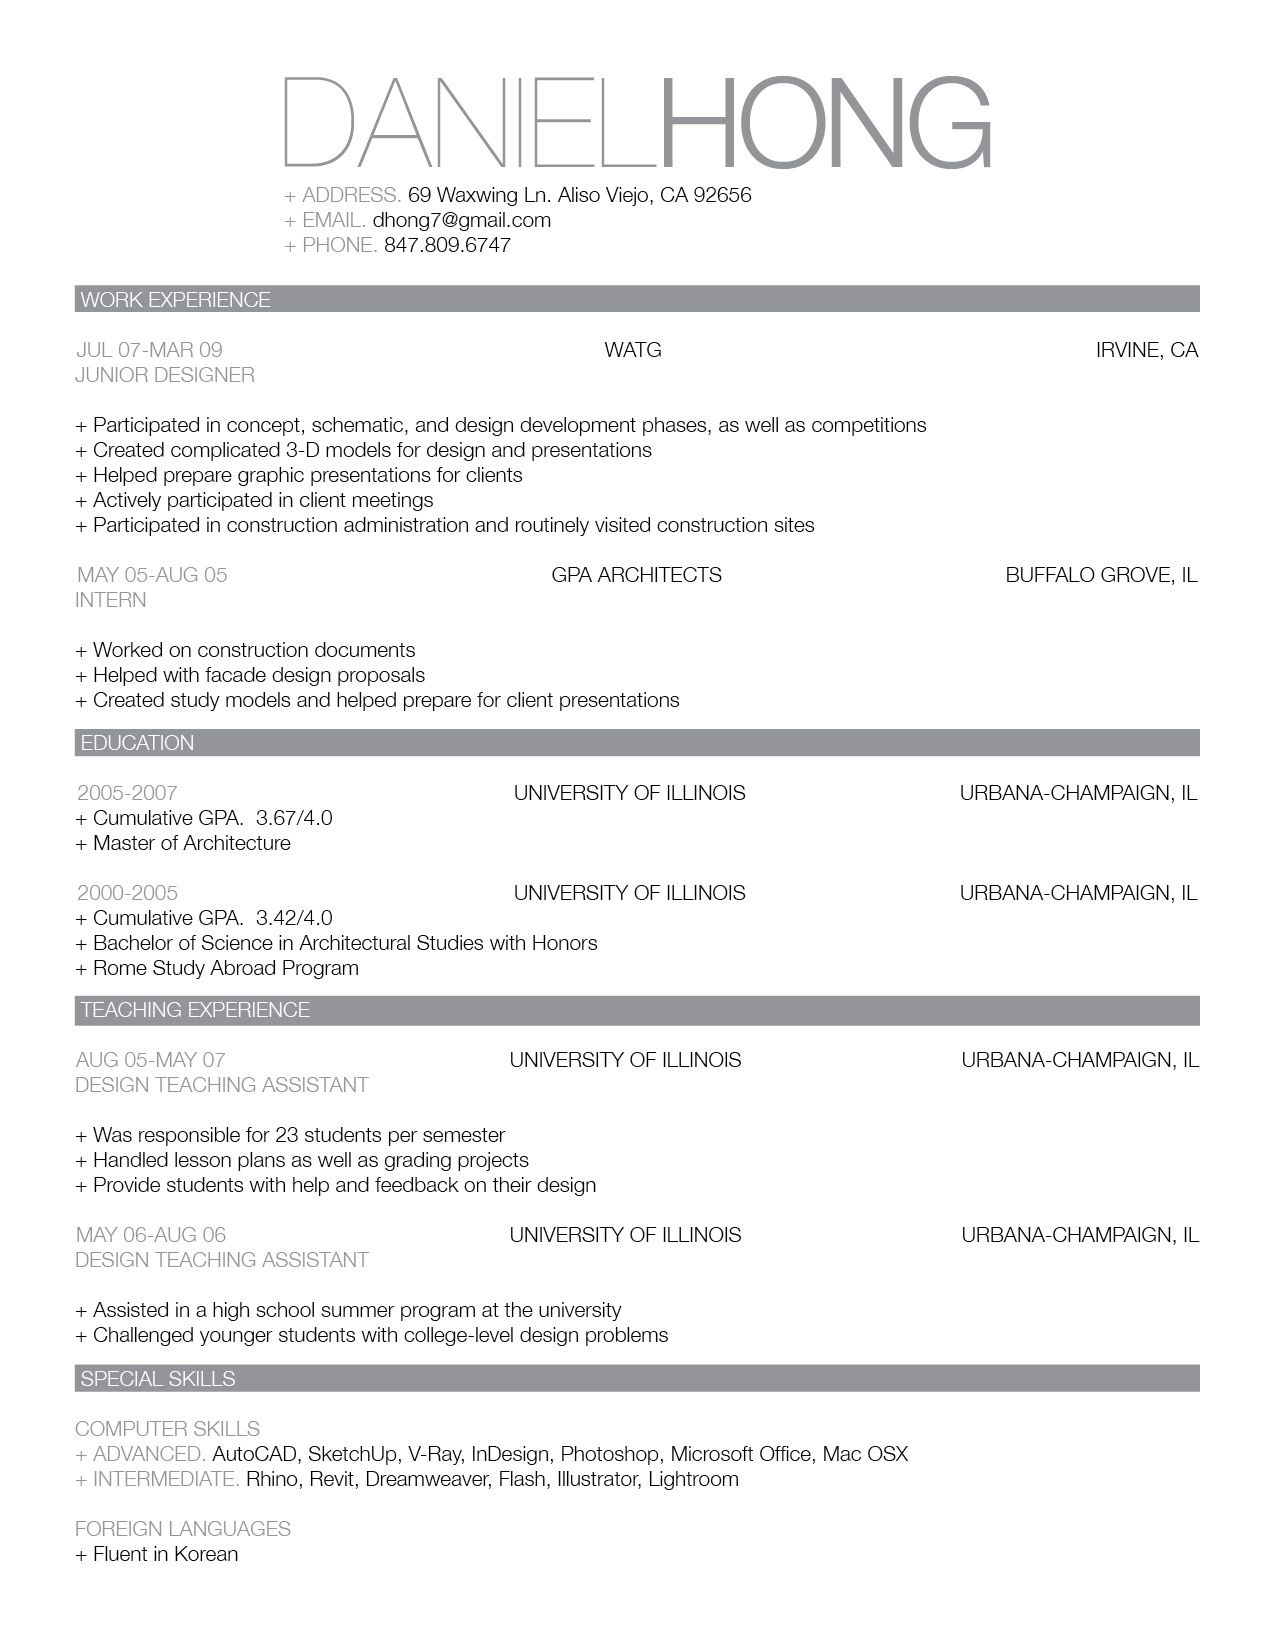 All About Template ~ Professional Resume Cv Template Professional Cv Resume  Templates Word Doc Professional Cv Resume Sample